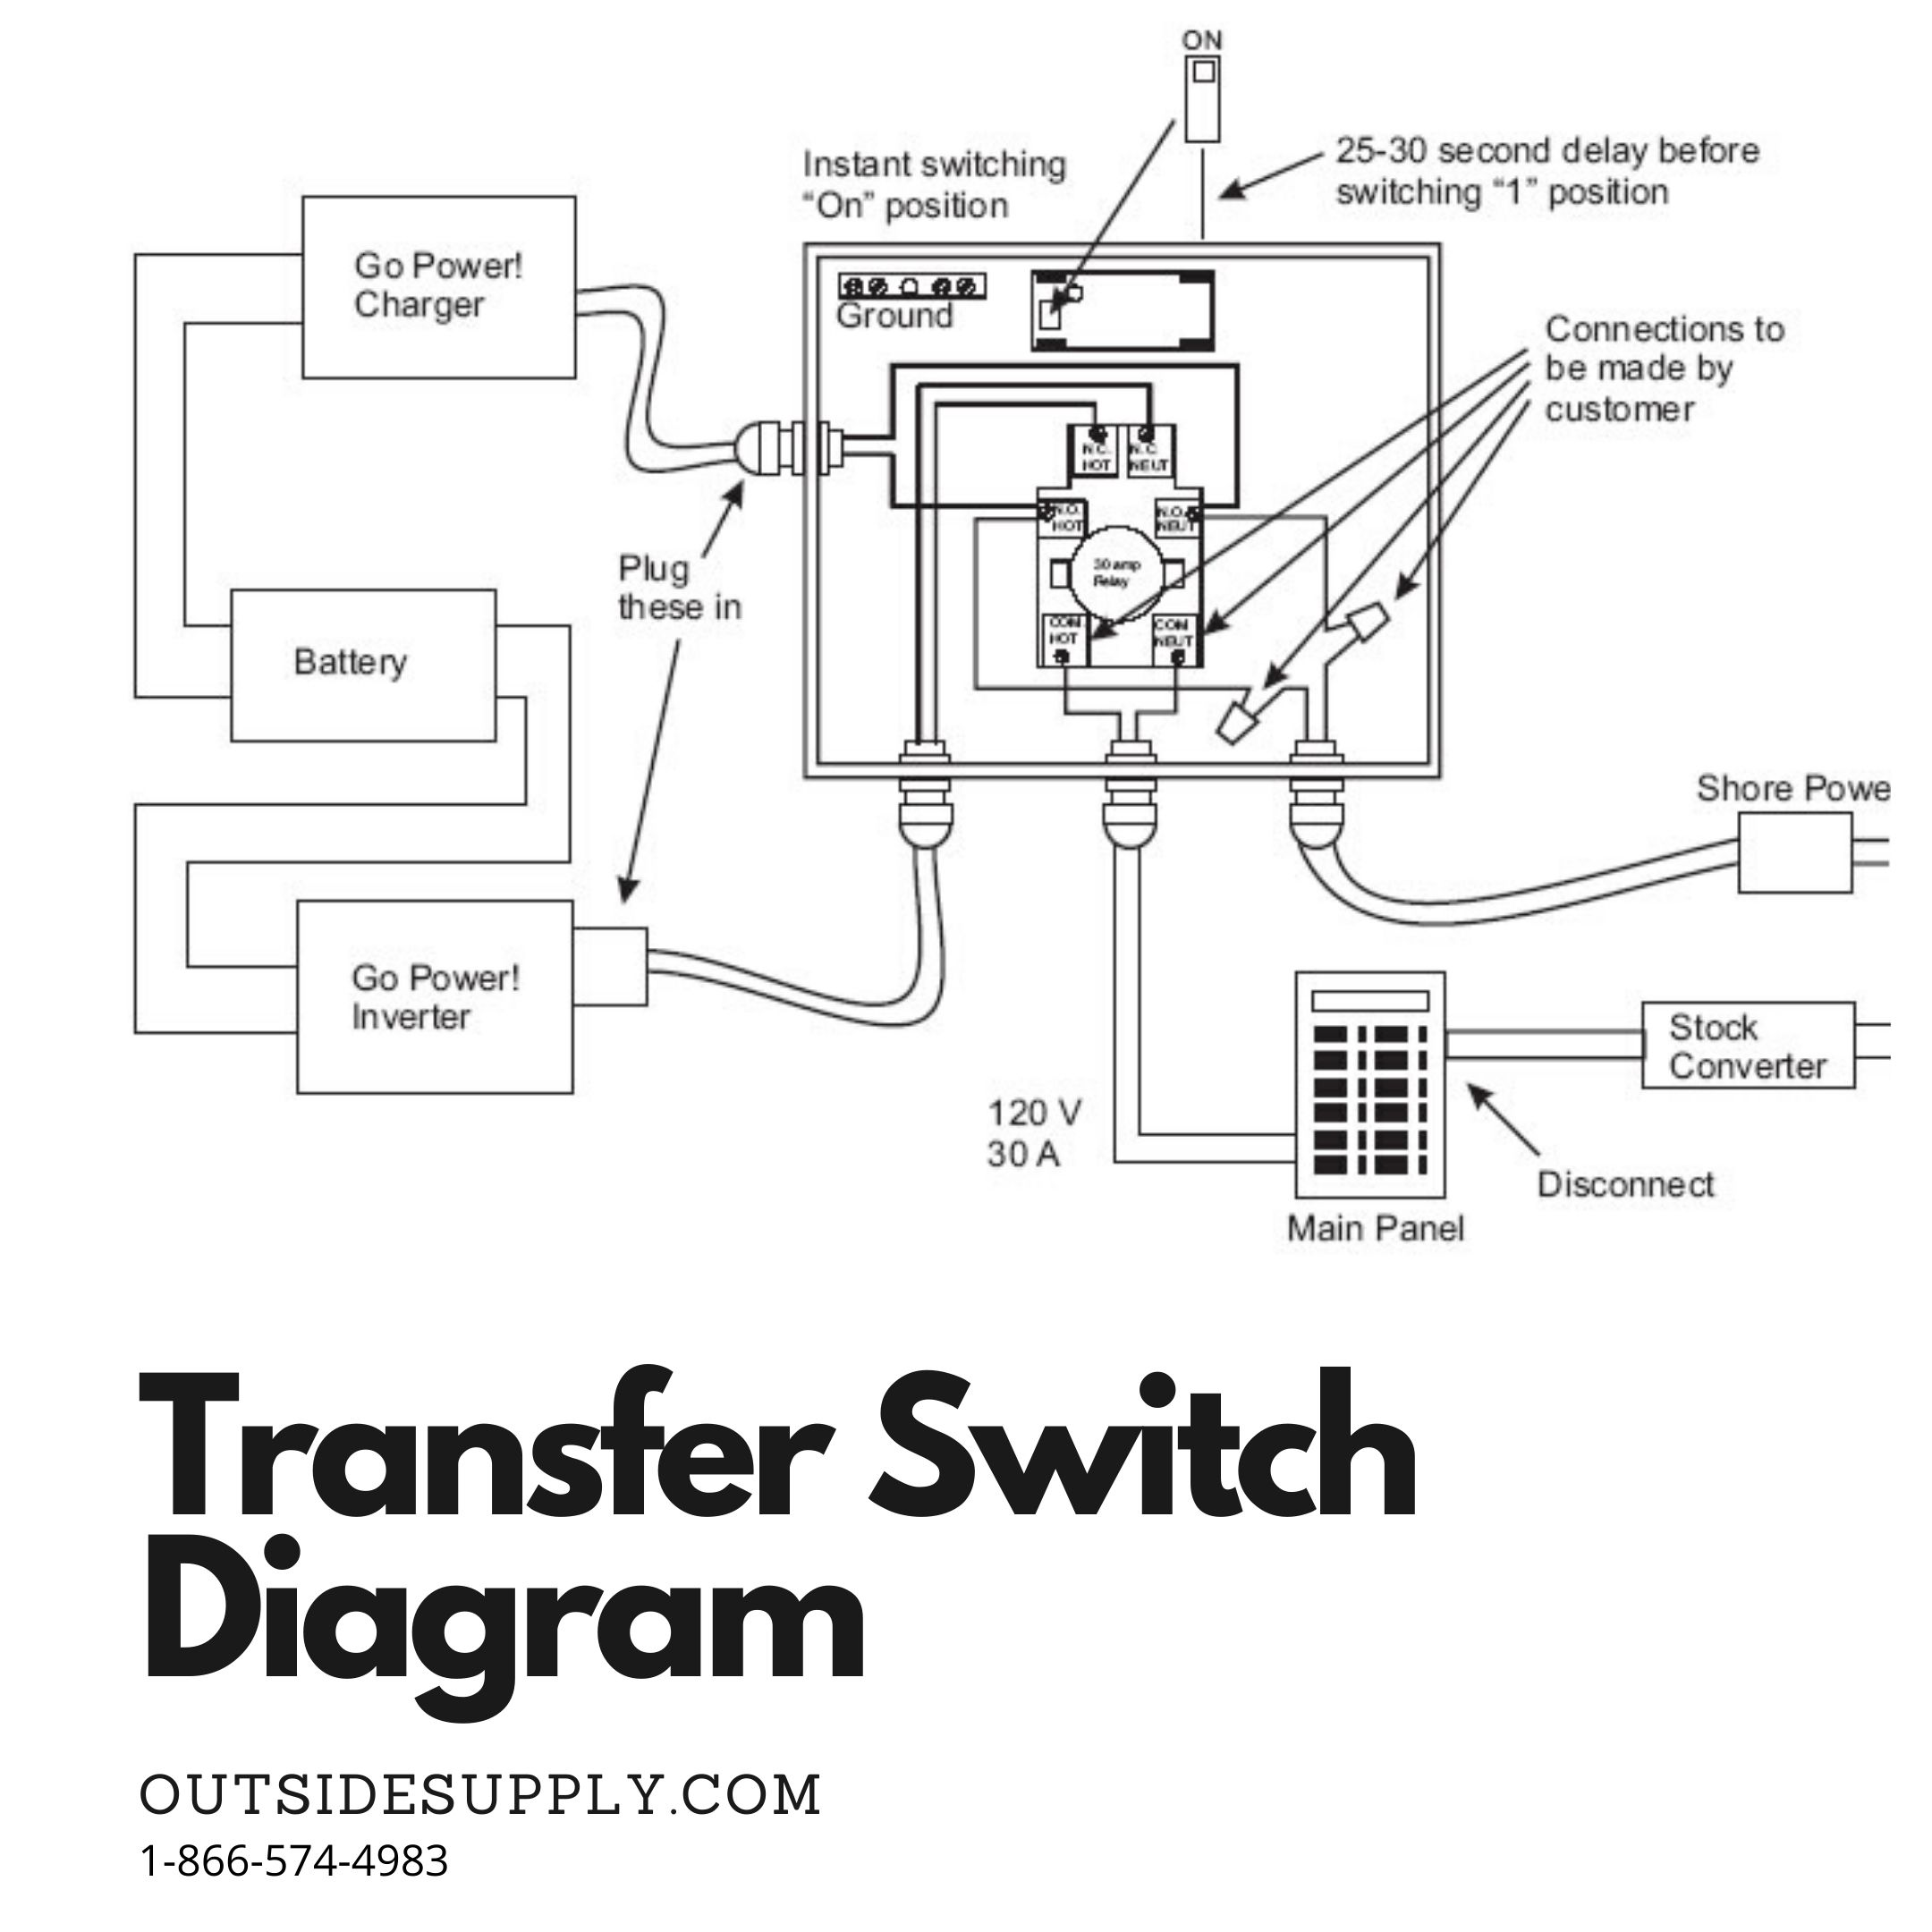 transfer switch wiring_diagram go power 30 amp transfer switch wiring diagram for a transfer switch at creativeand.co